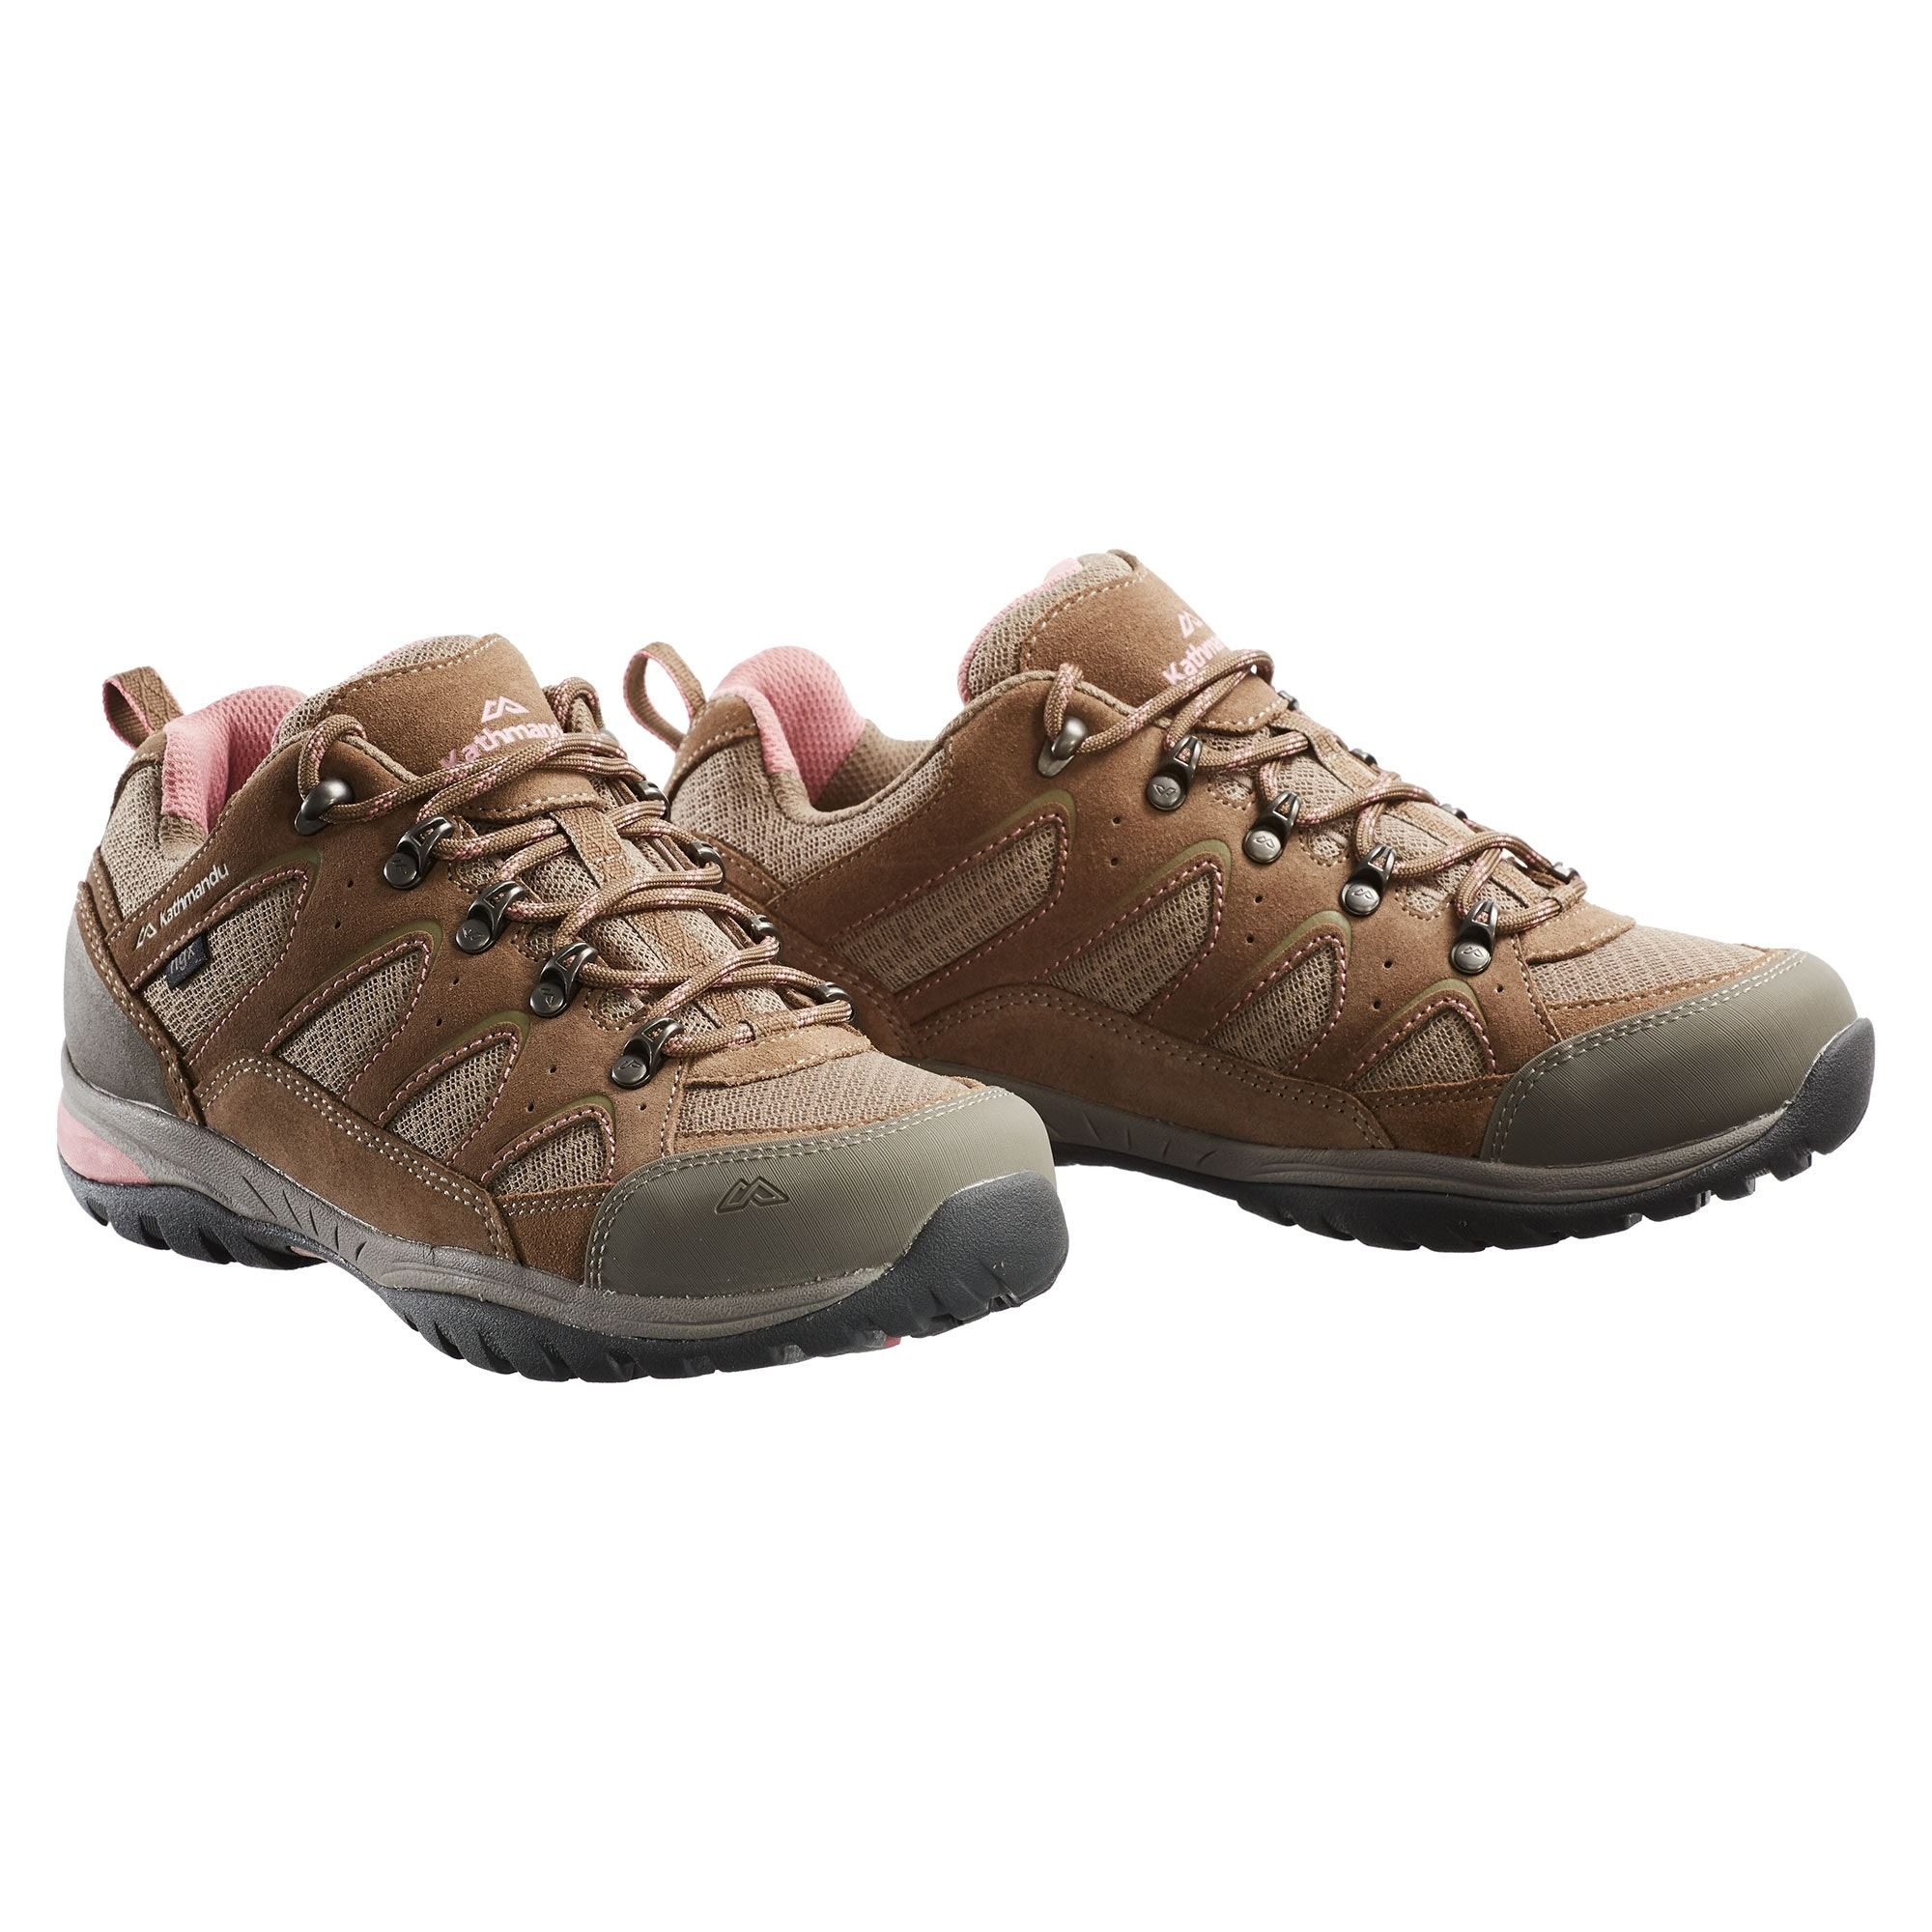 Lightweight Brown Leather Travel Shoes